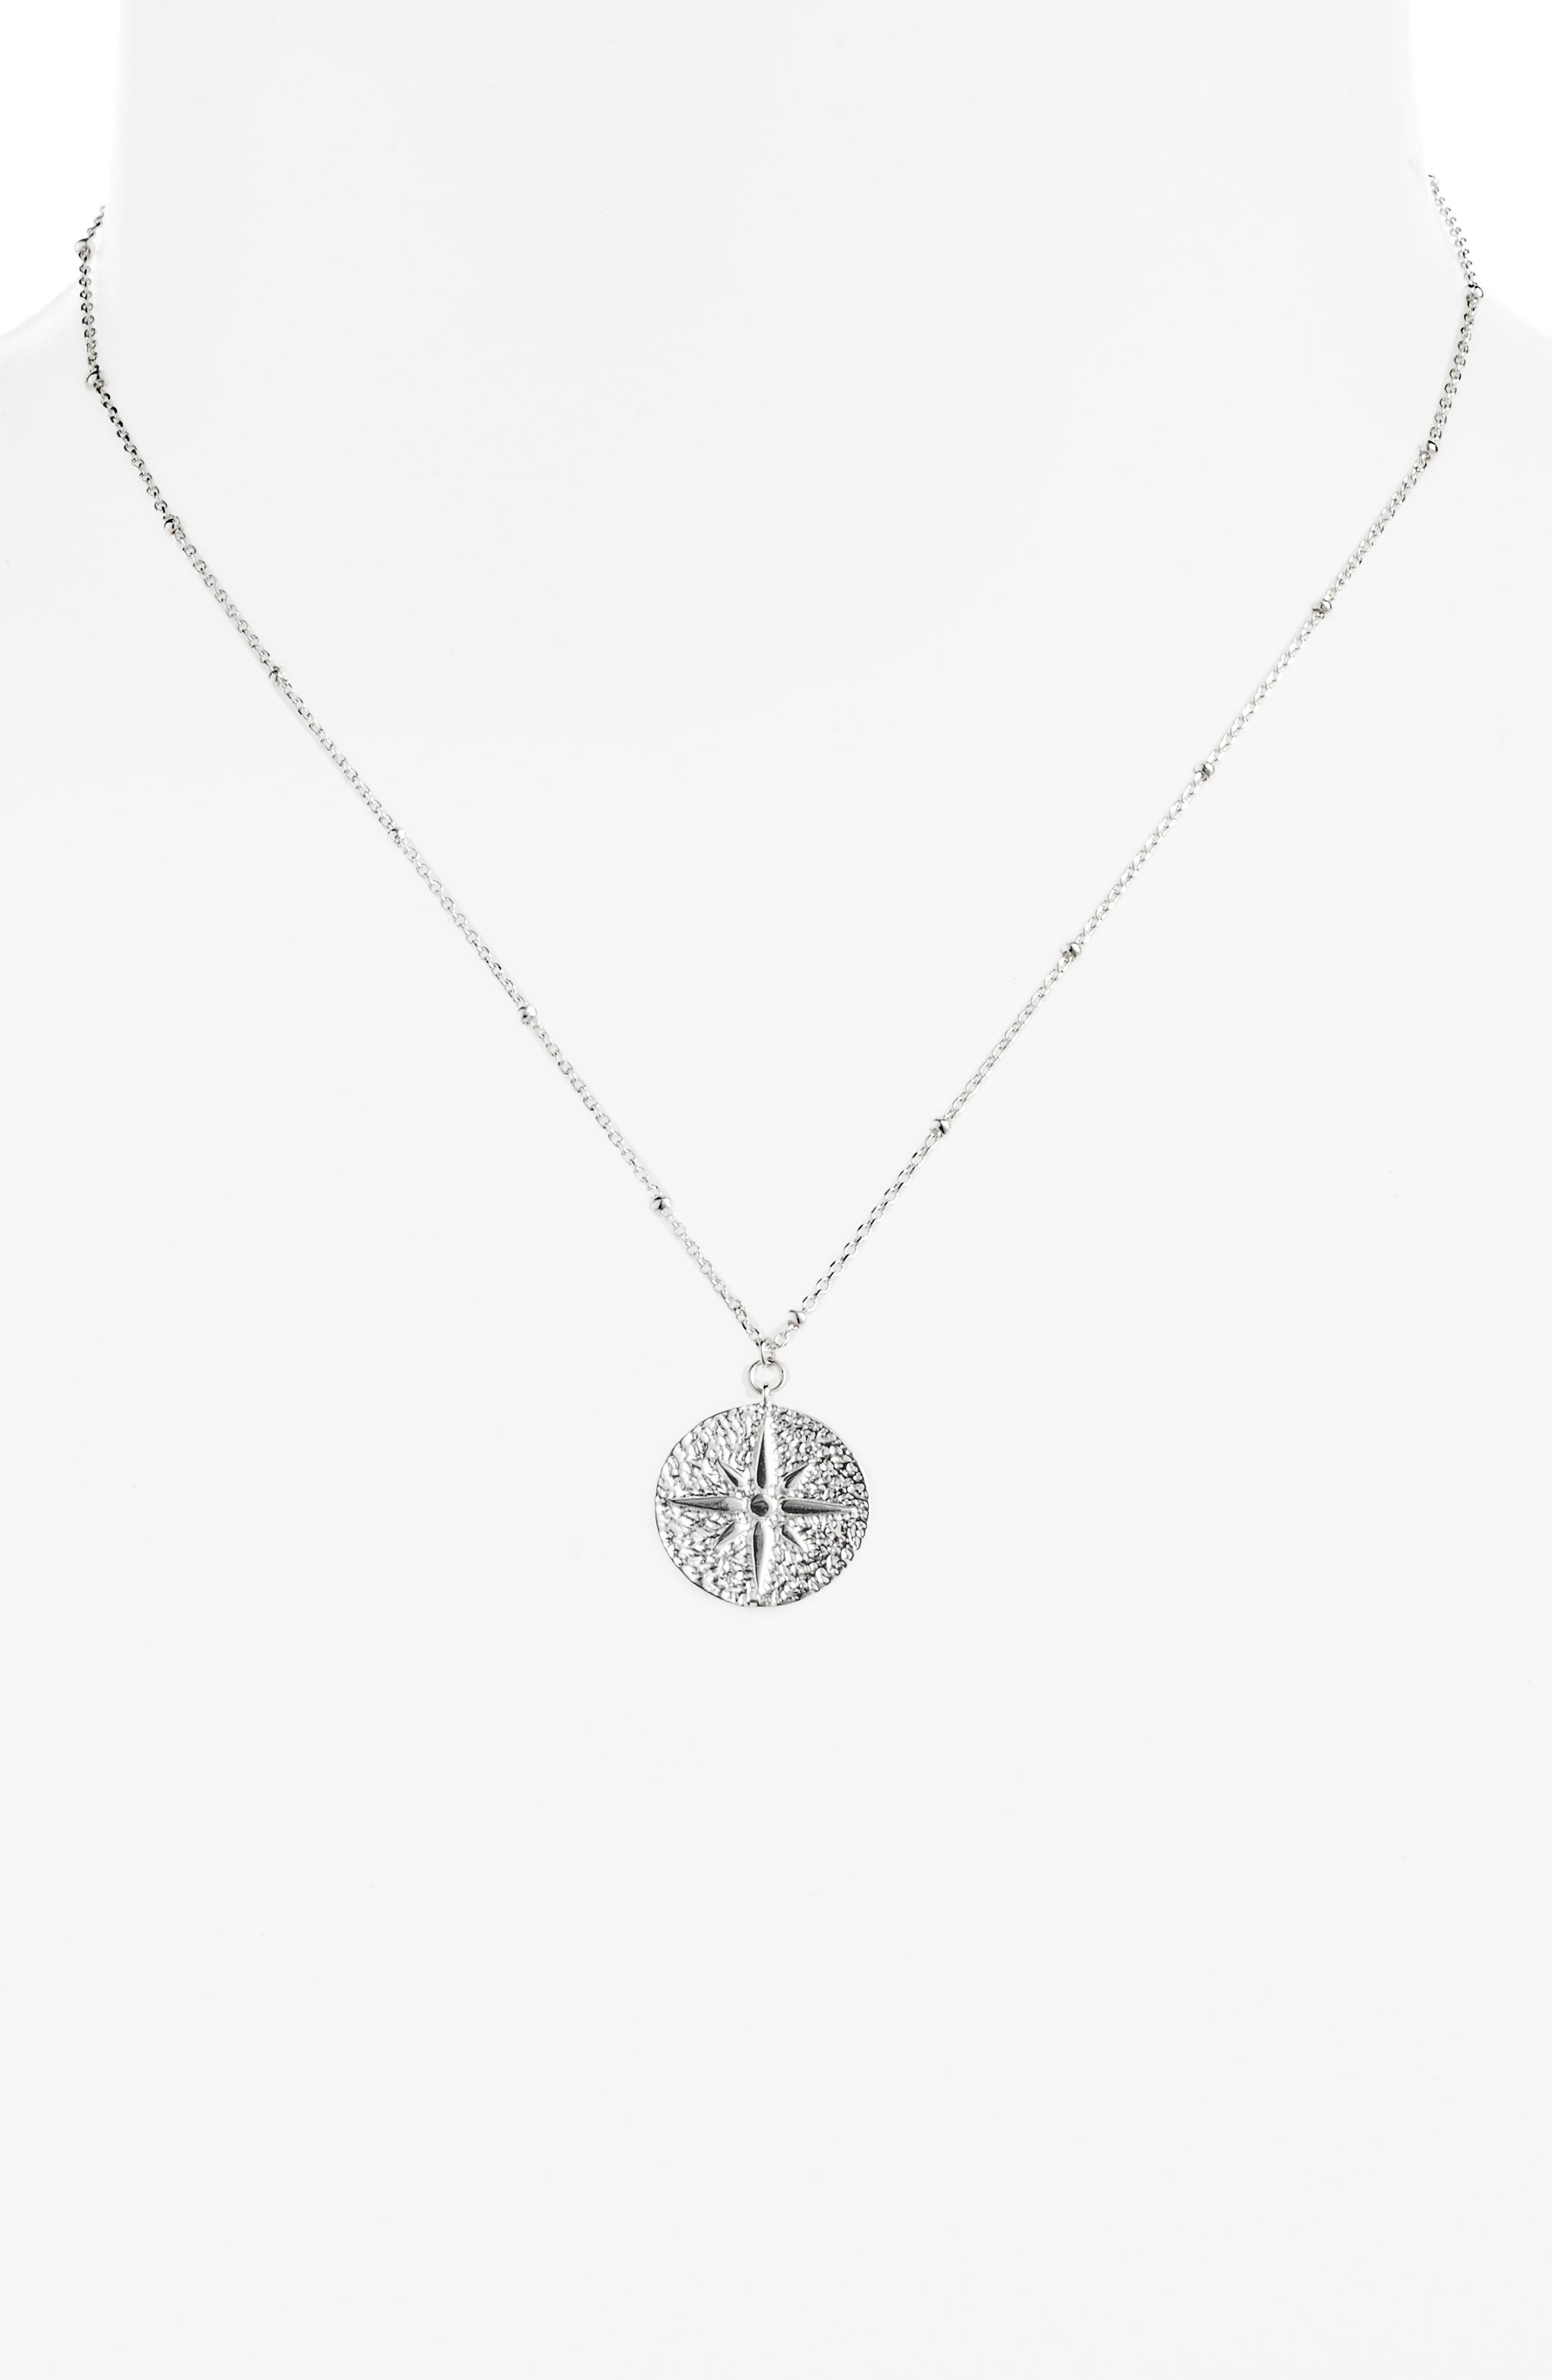 North Star Medallion Necklace,                             Alternate thumbnail 2, color,                             SILVER